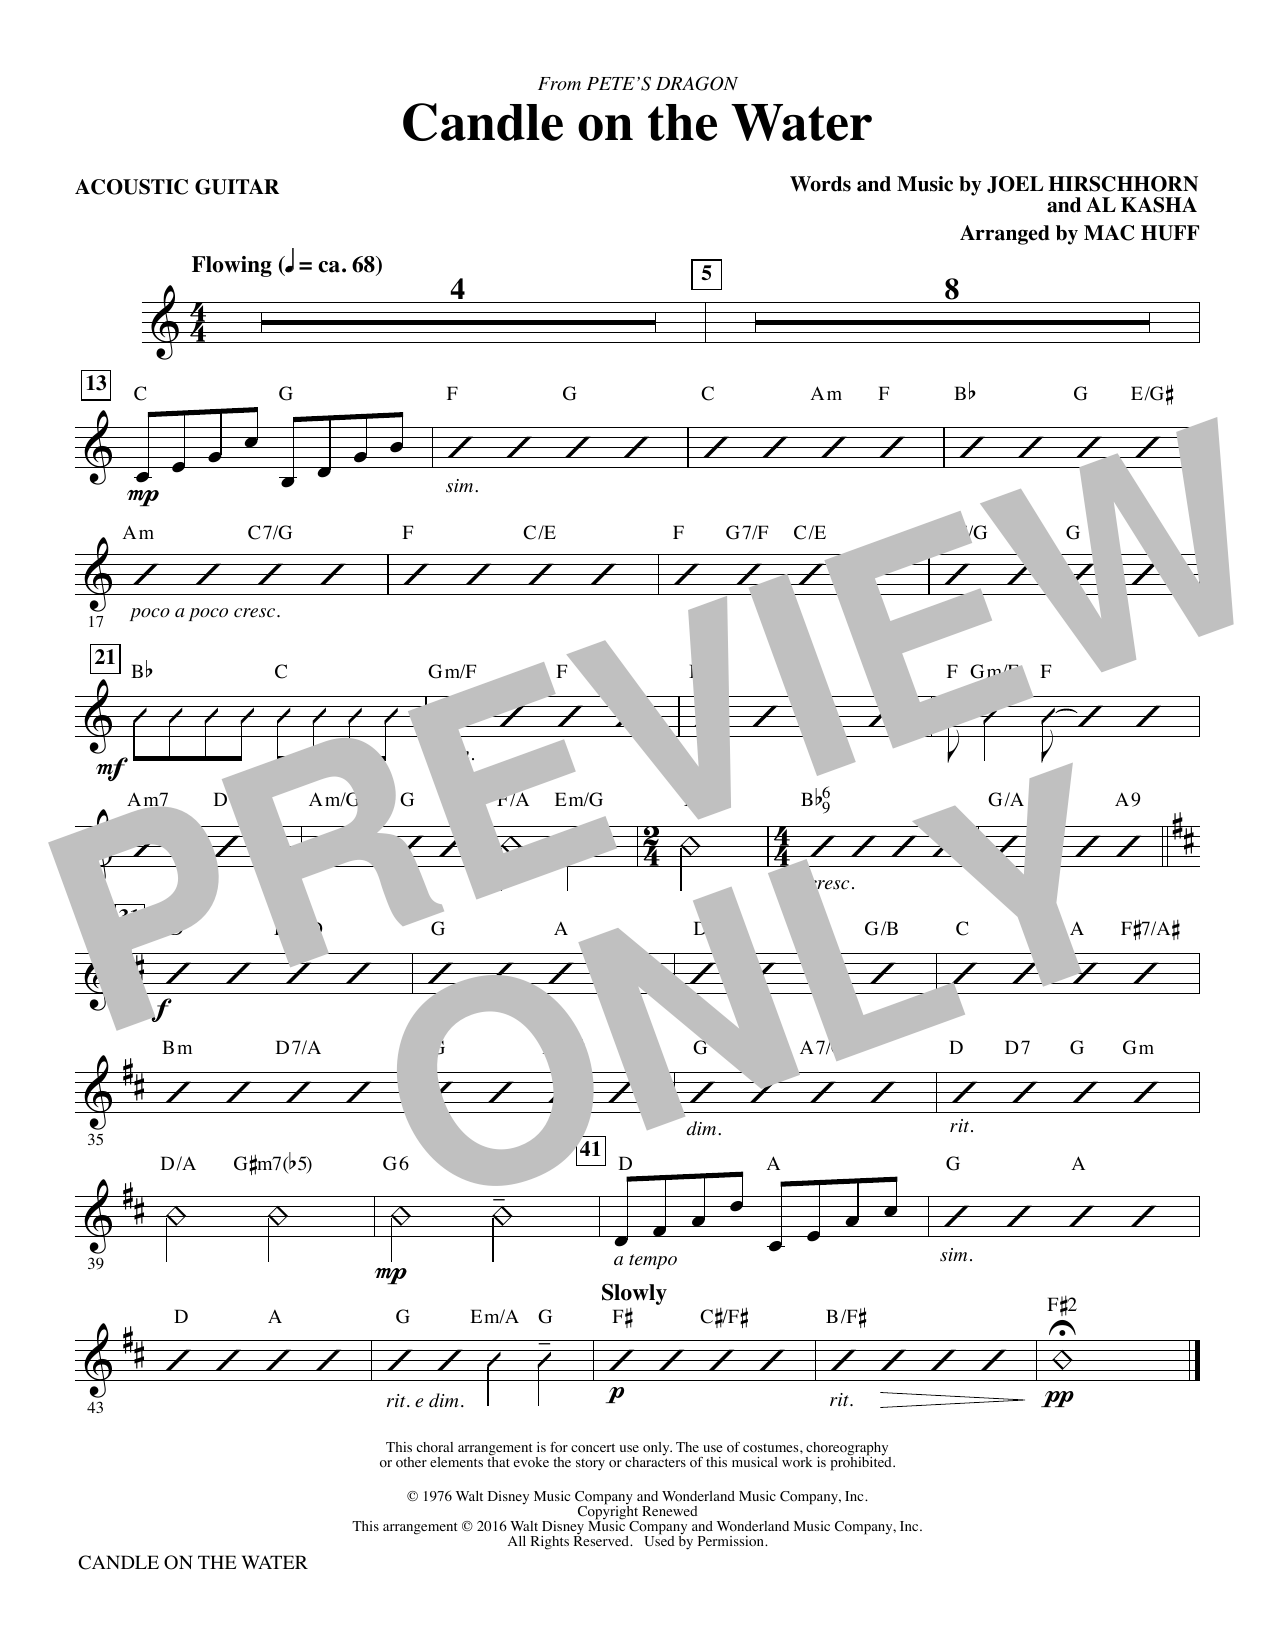 Candle on the Water - Acoustic Guitar Sheet Music